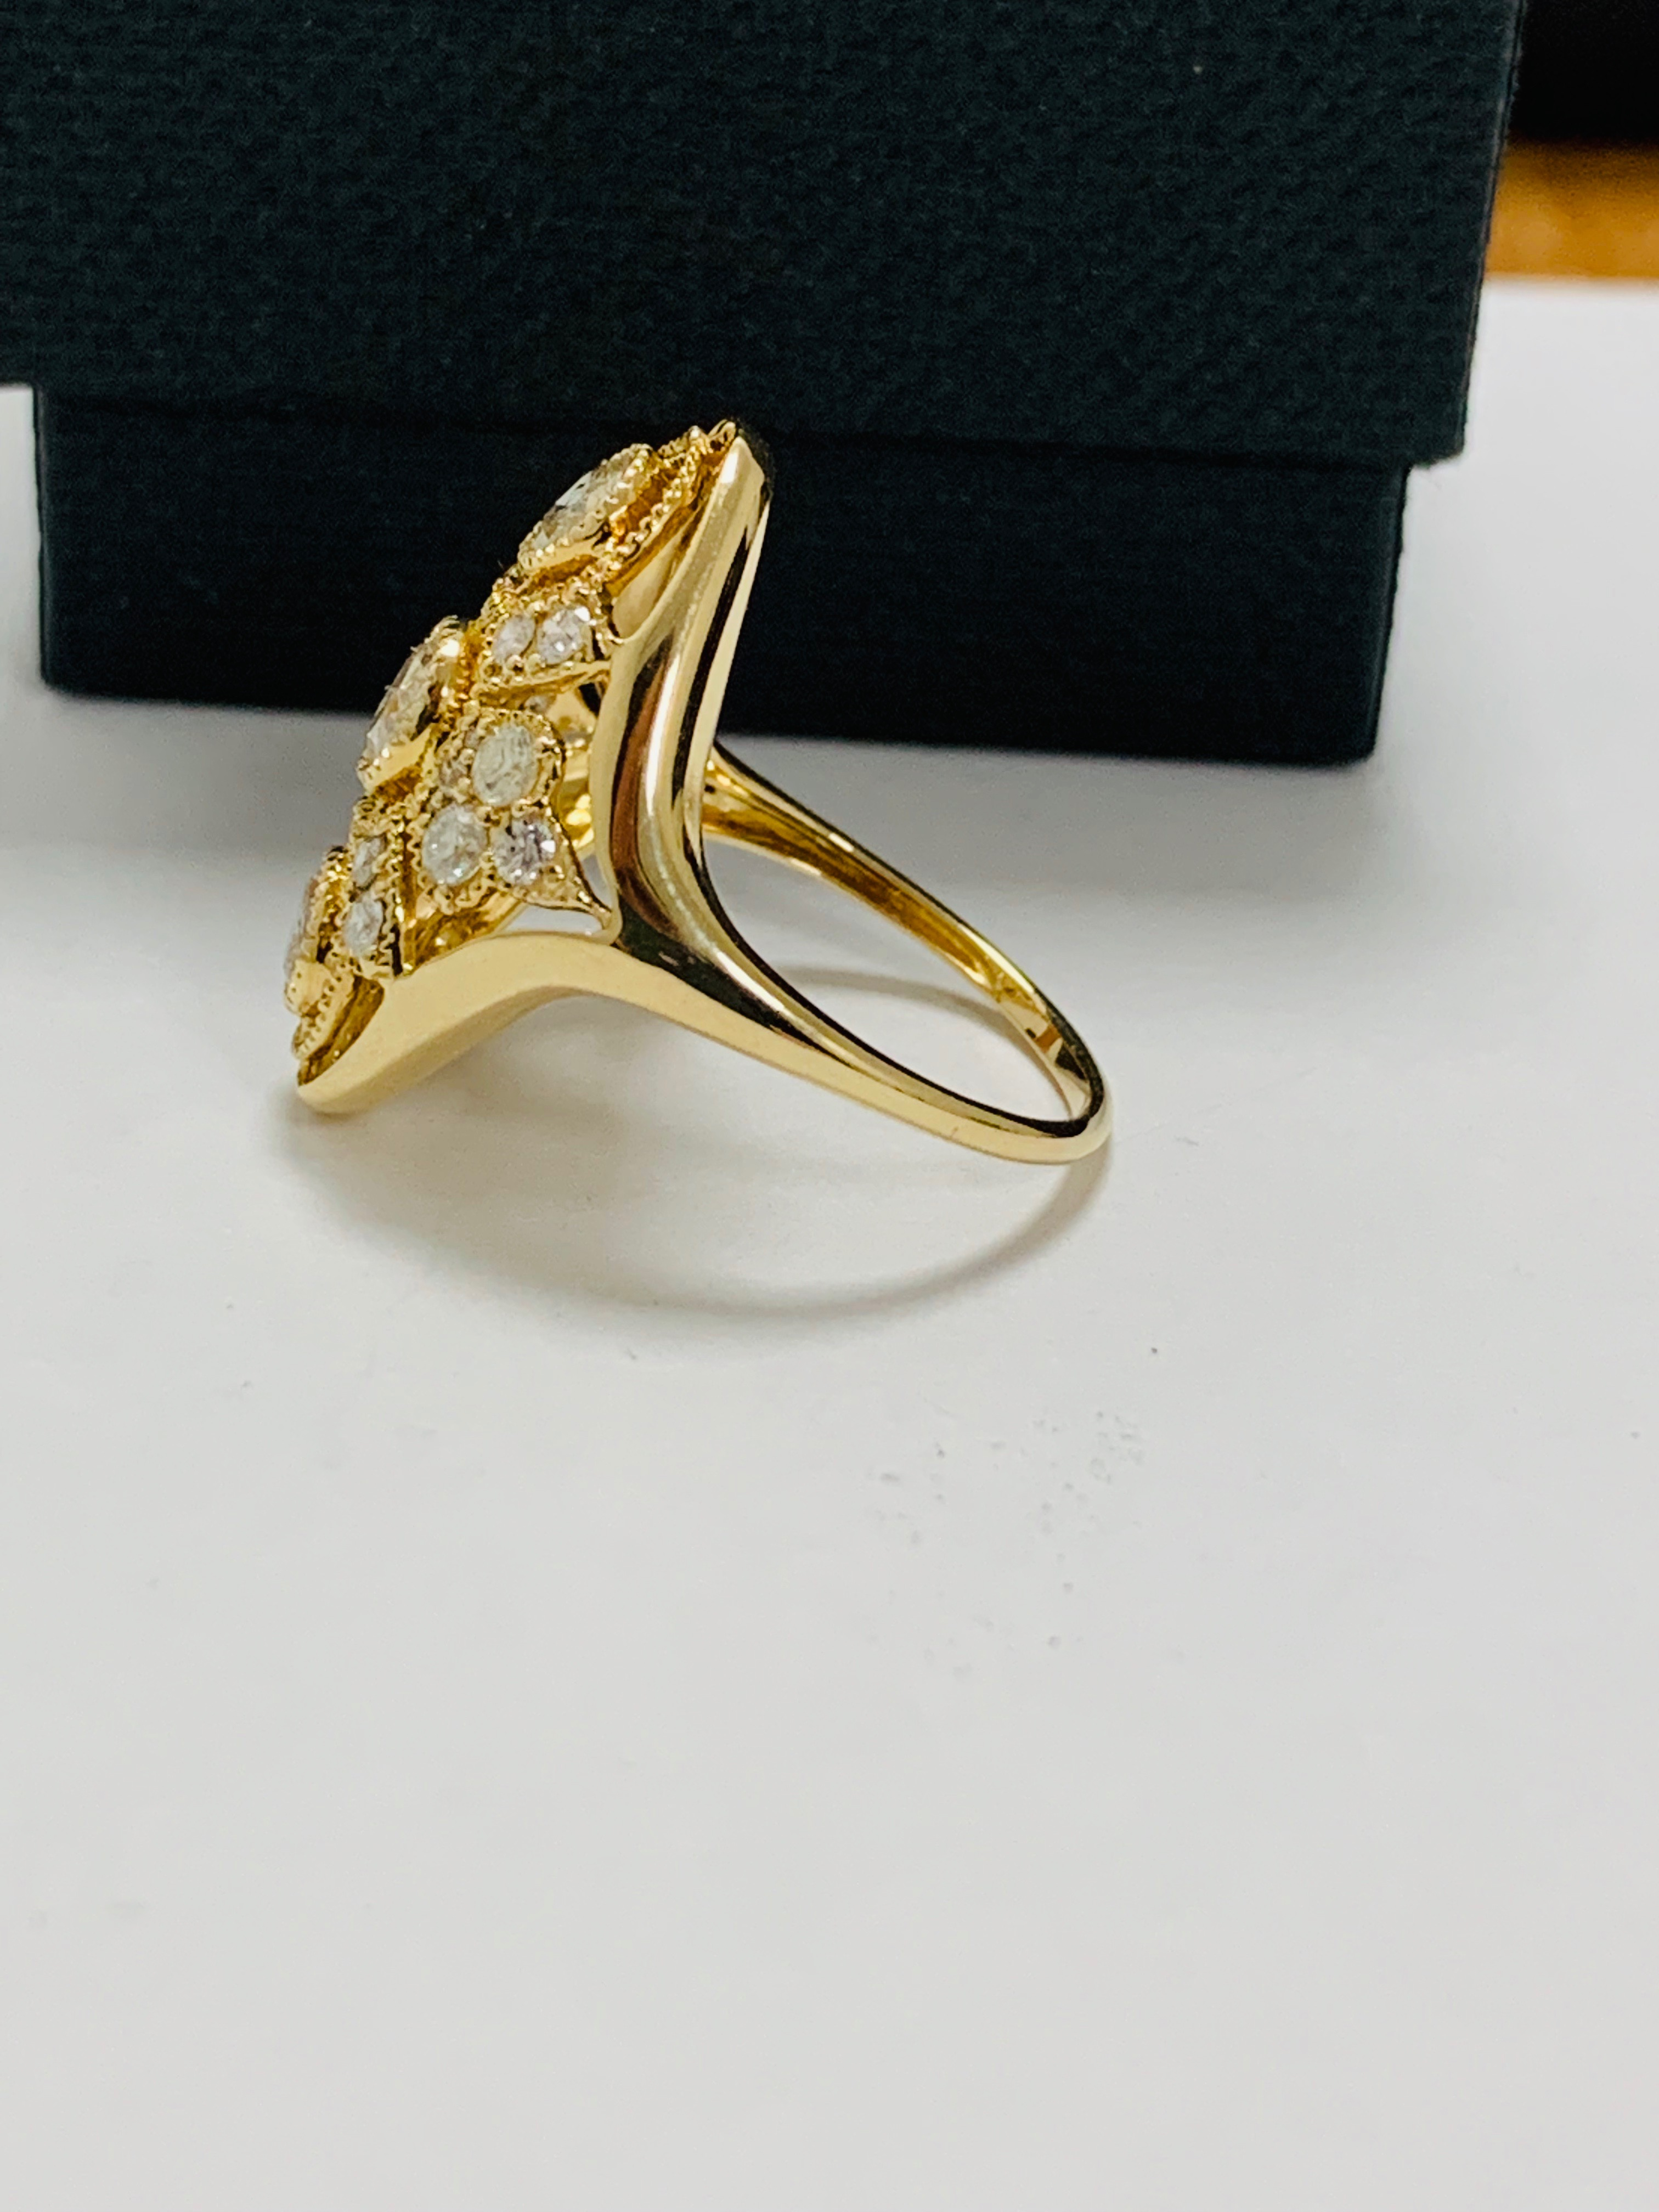 14ct yellow gold diamond ring. - Image 3 of 11